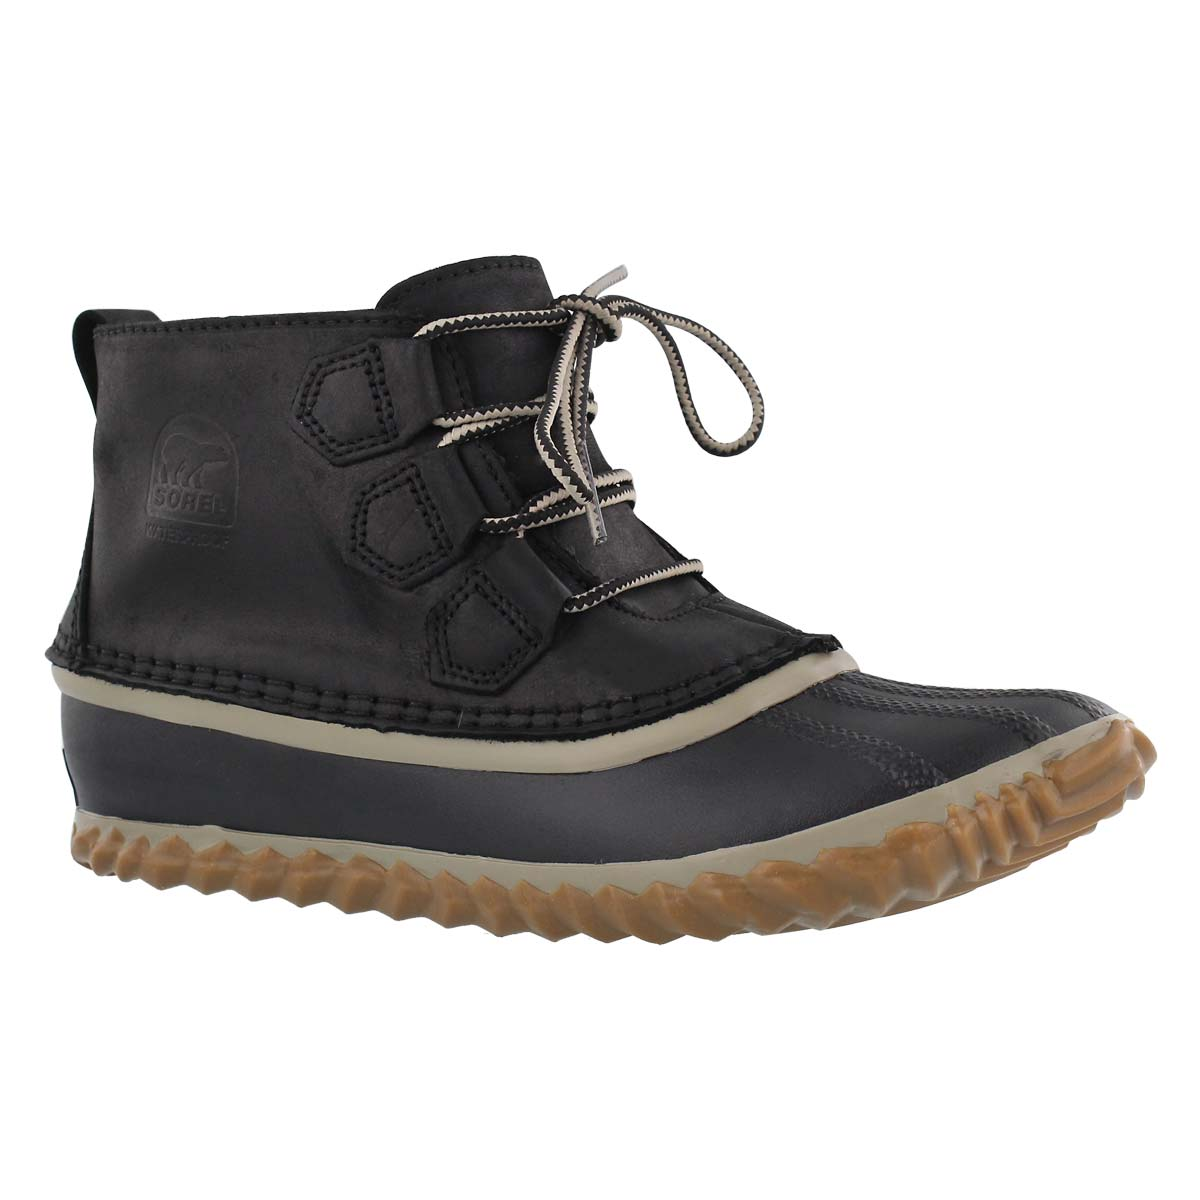 Women's OUT'N ABOUT LEATHER black/grey booties